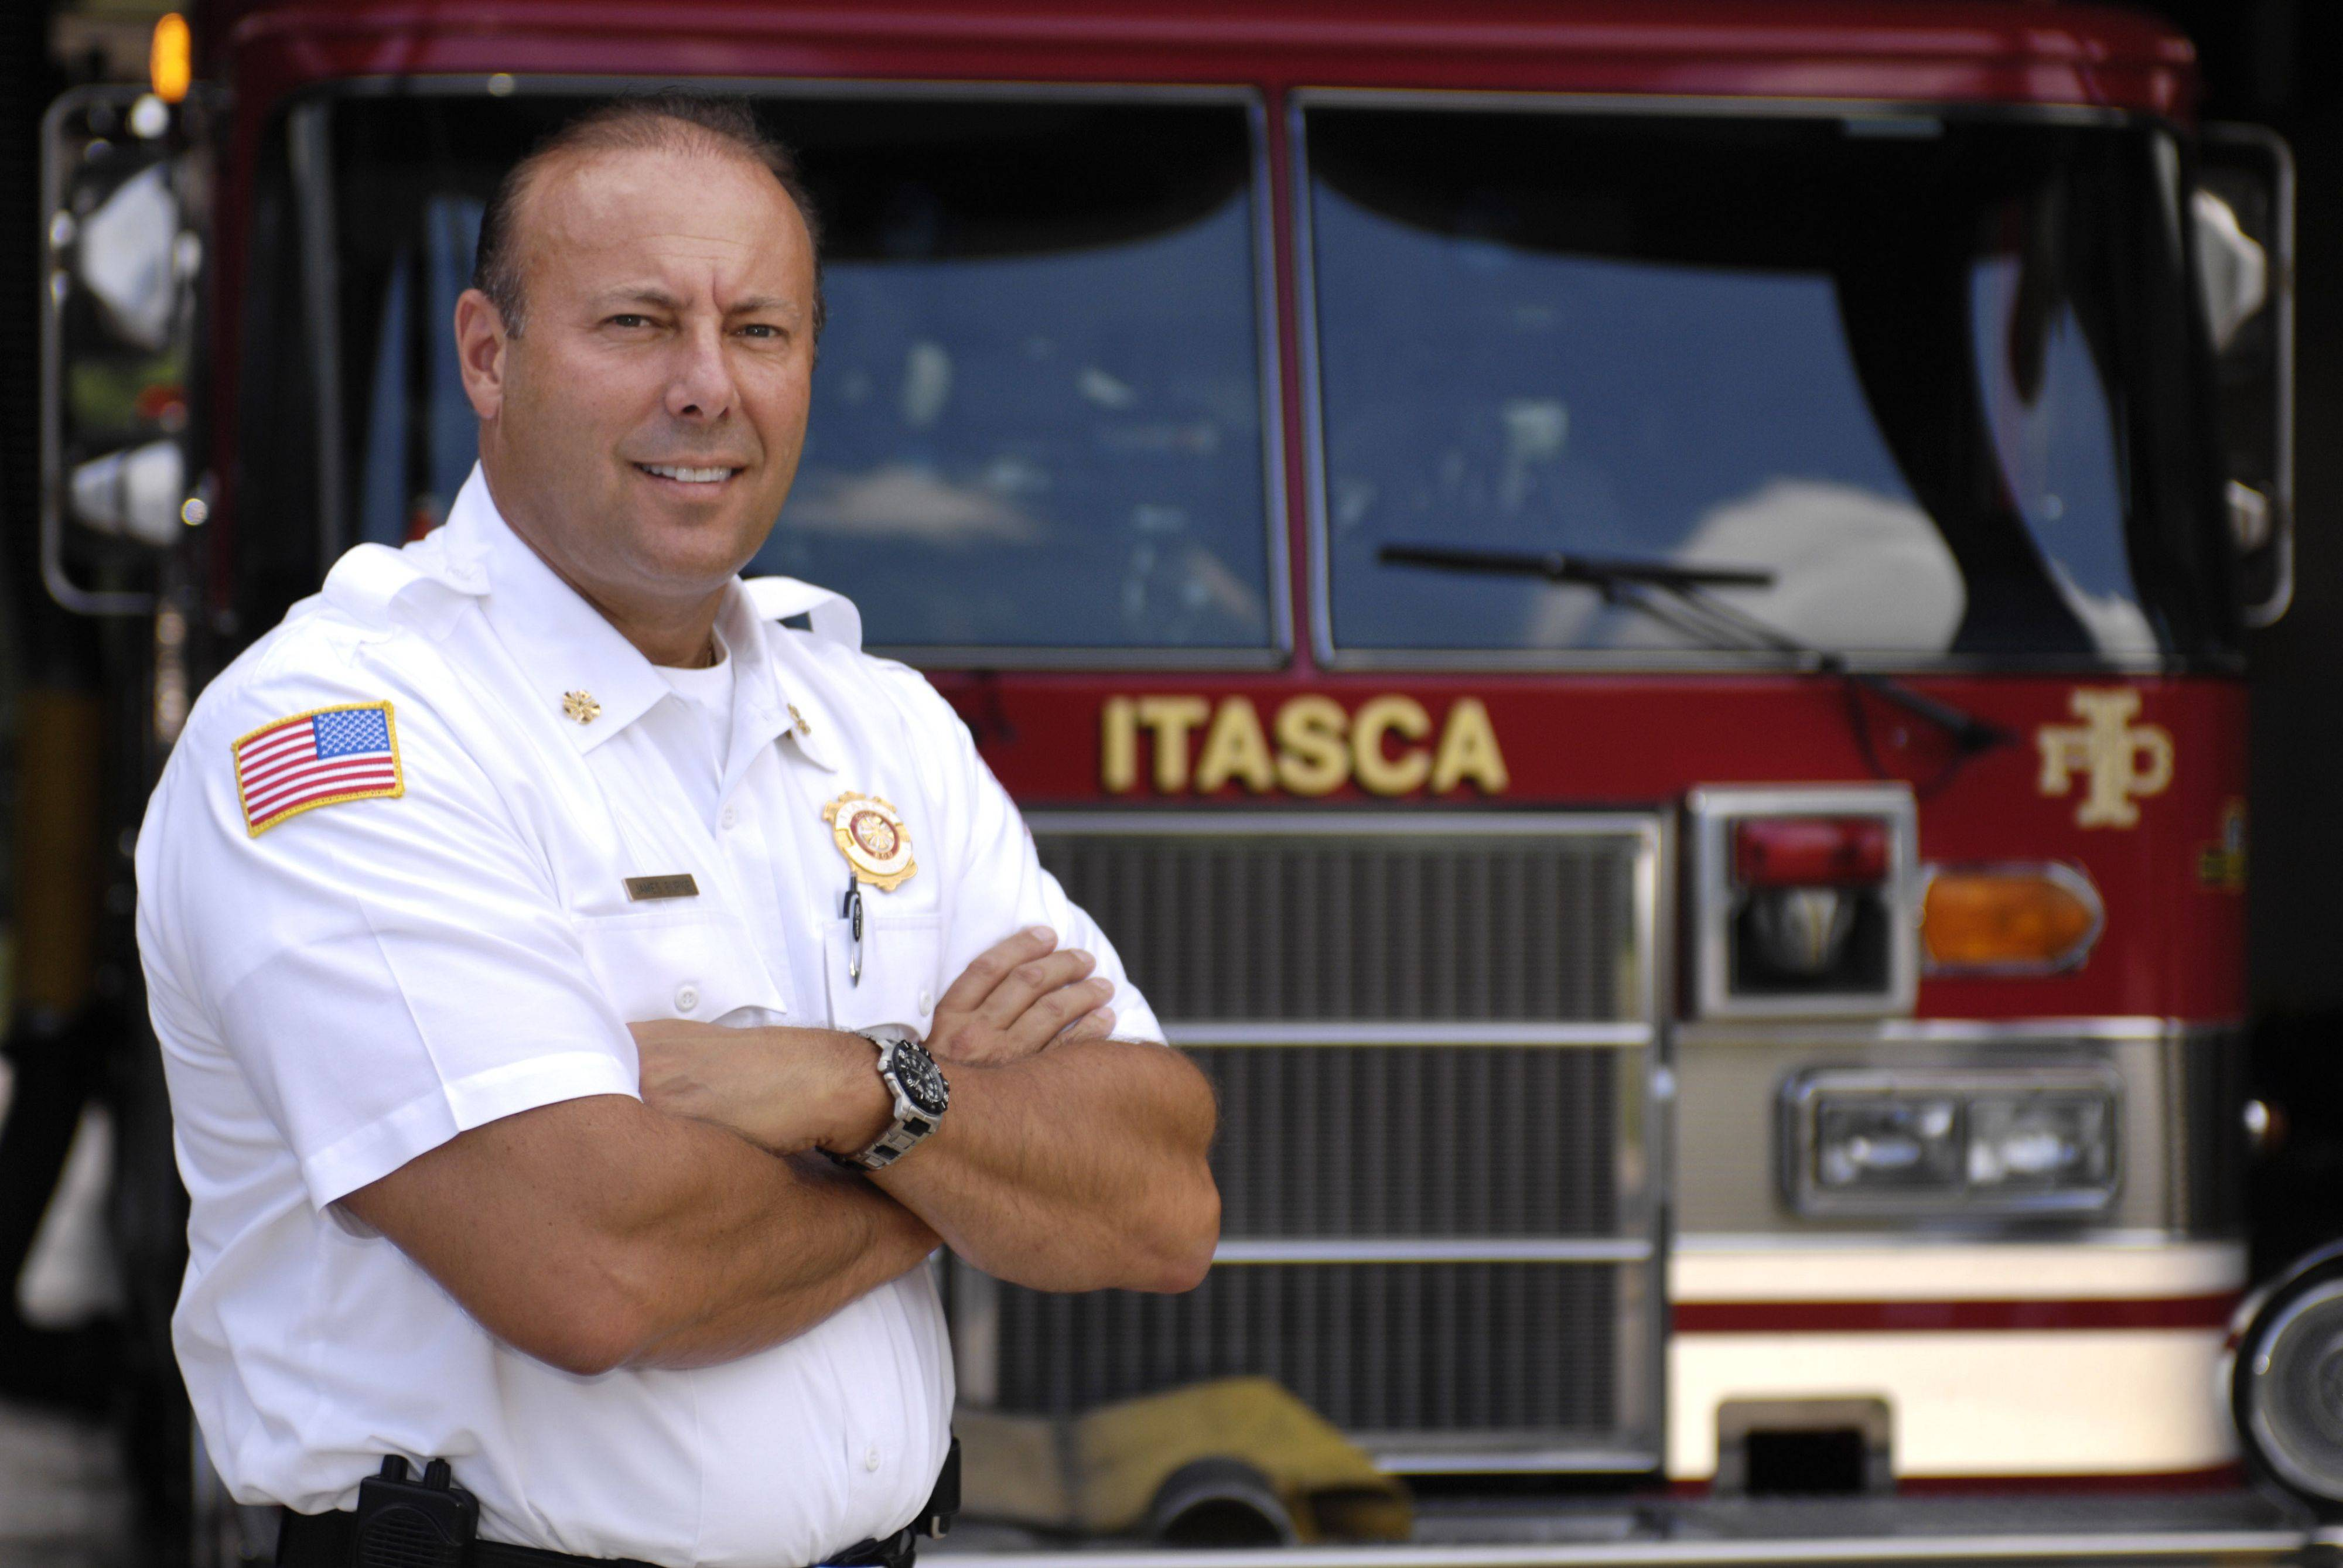 Itasca Fire Chief James Burke took the helm of the Itasca Fire Protection District in April.